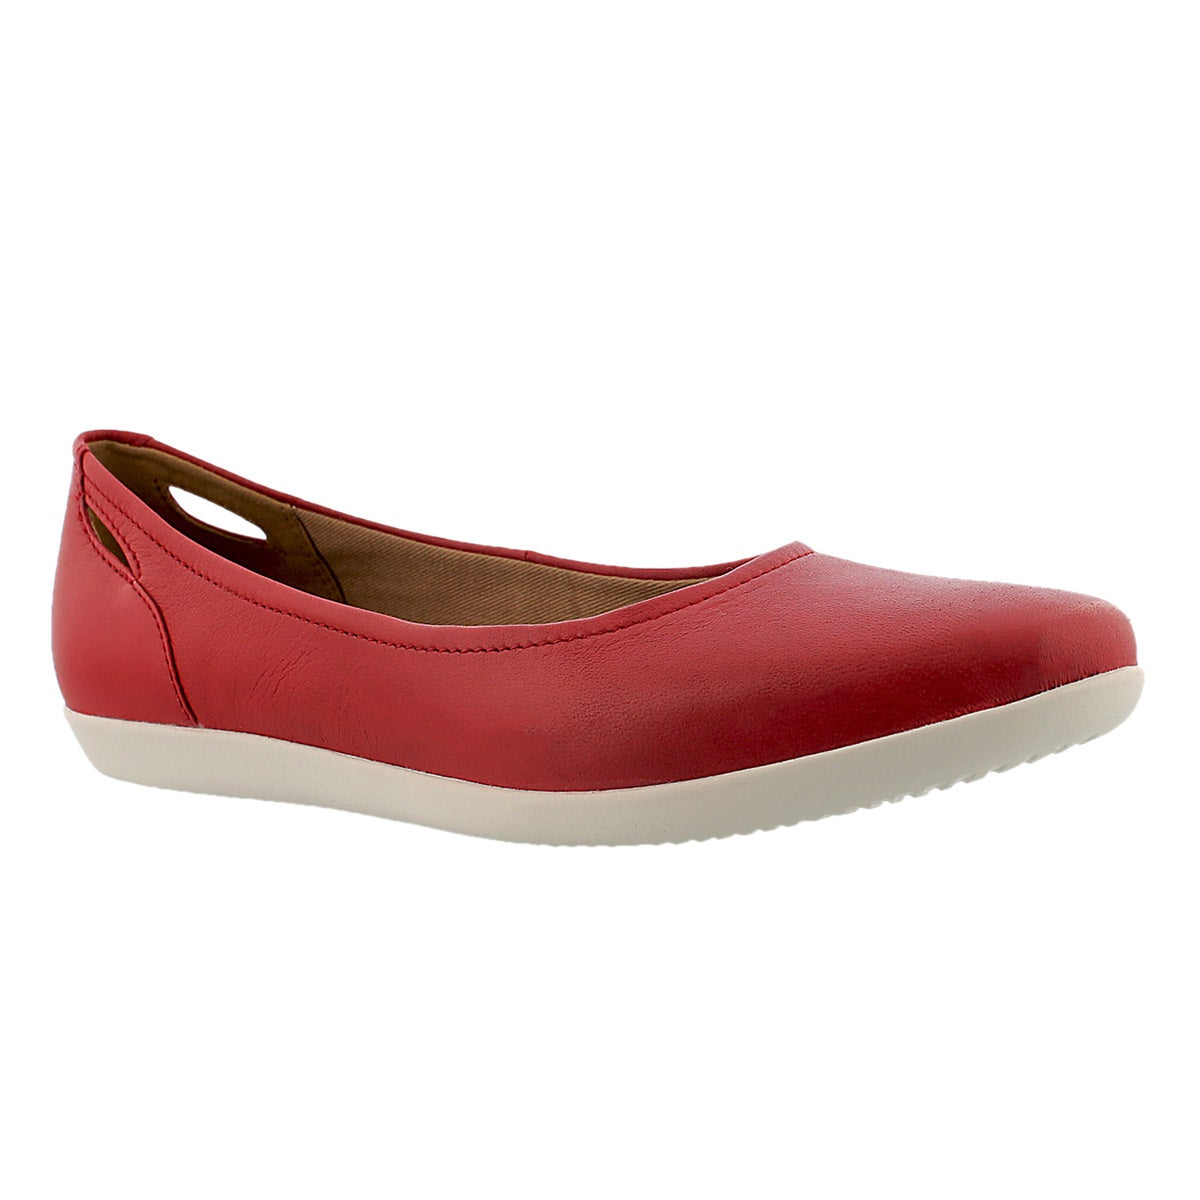 Lds Helina Alessia red leather flat